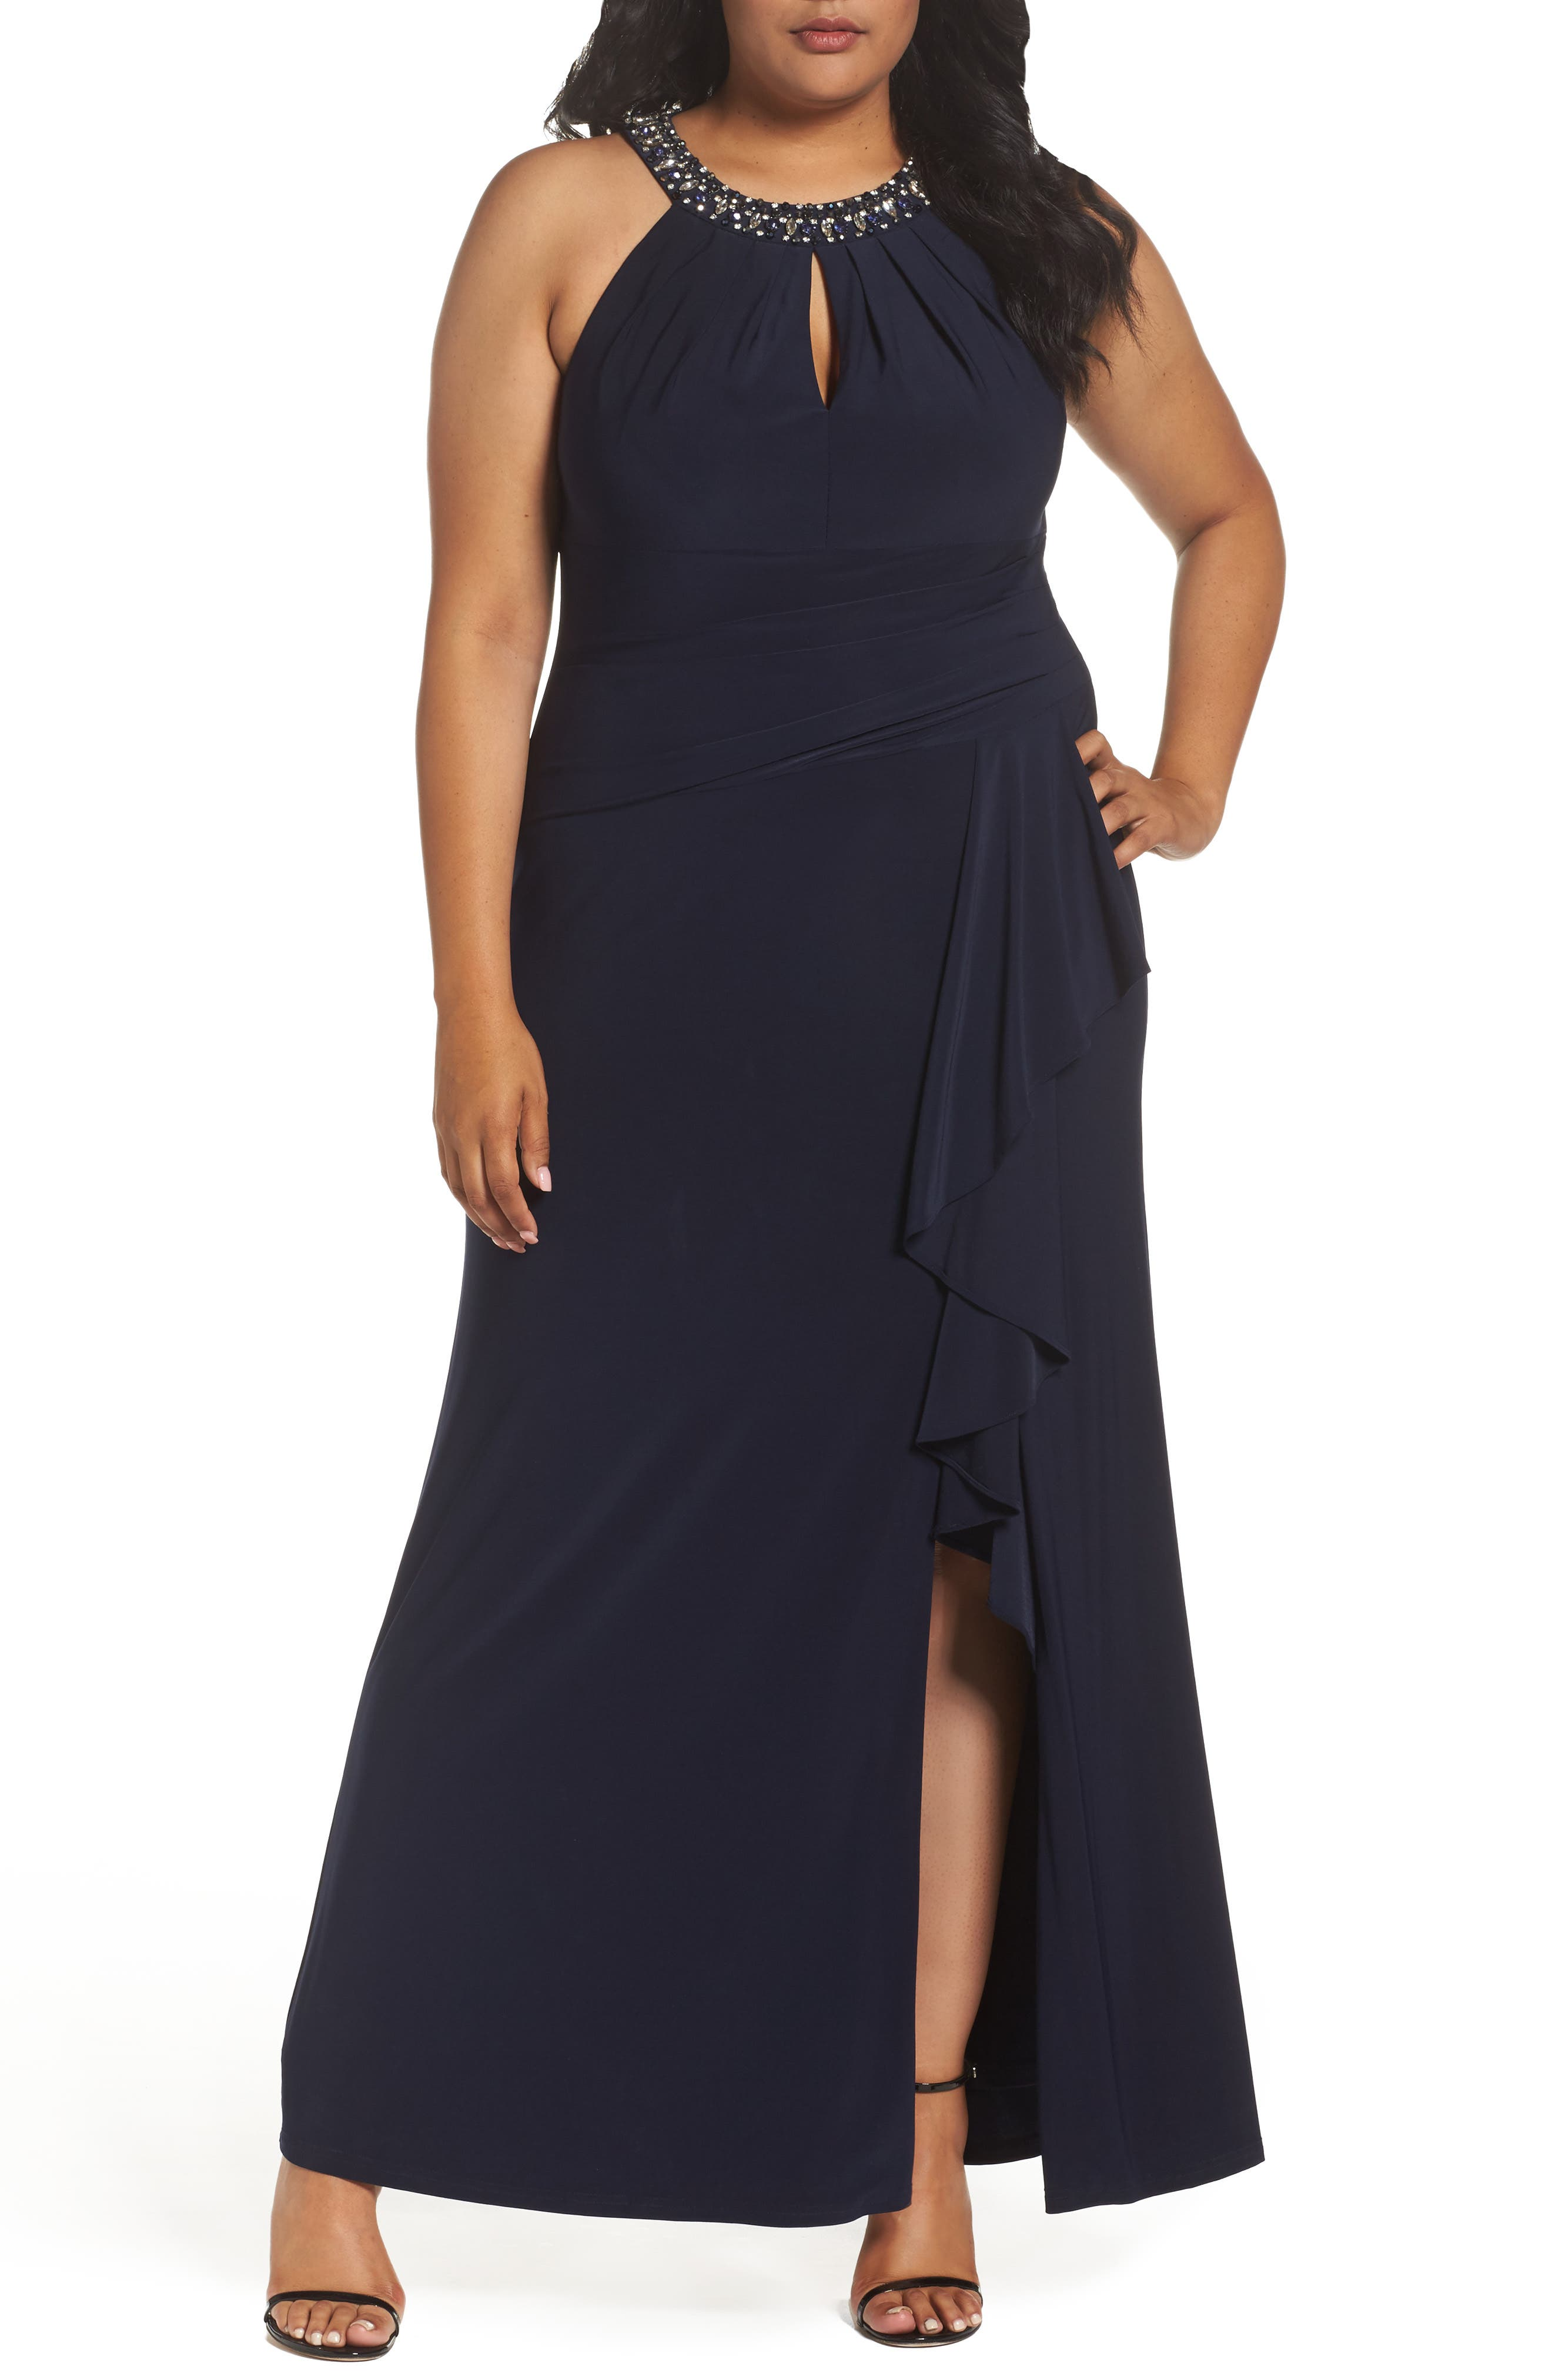 Vince Camuto Beaded Neck Faux Wrap Gown (Plus Size)